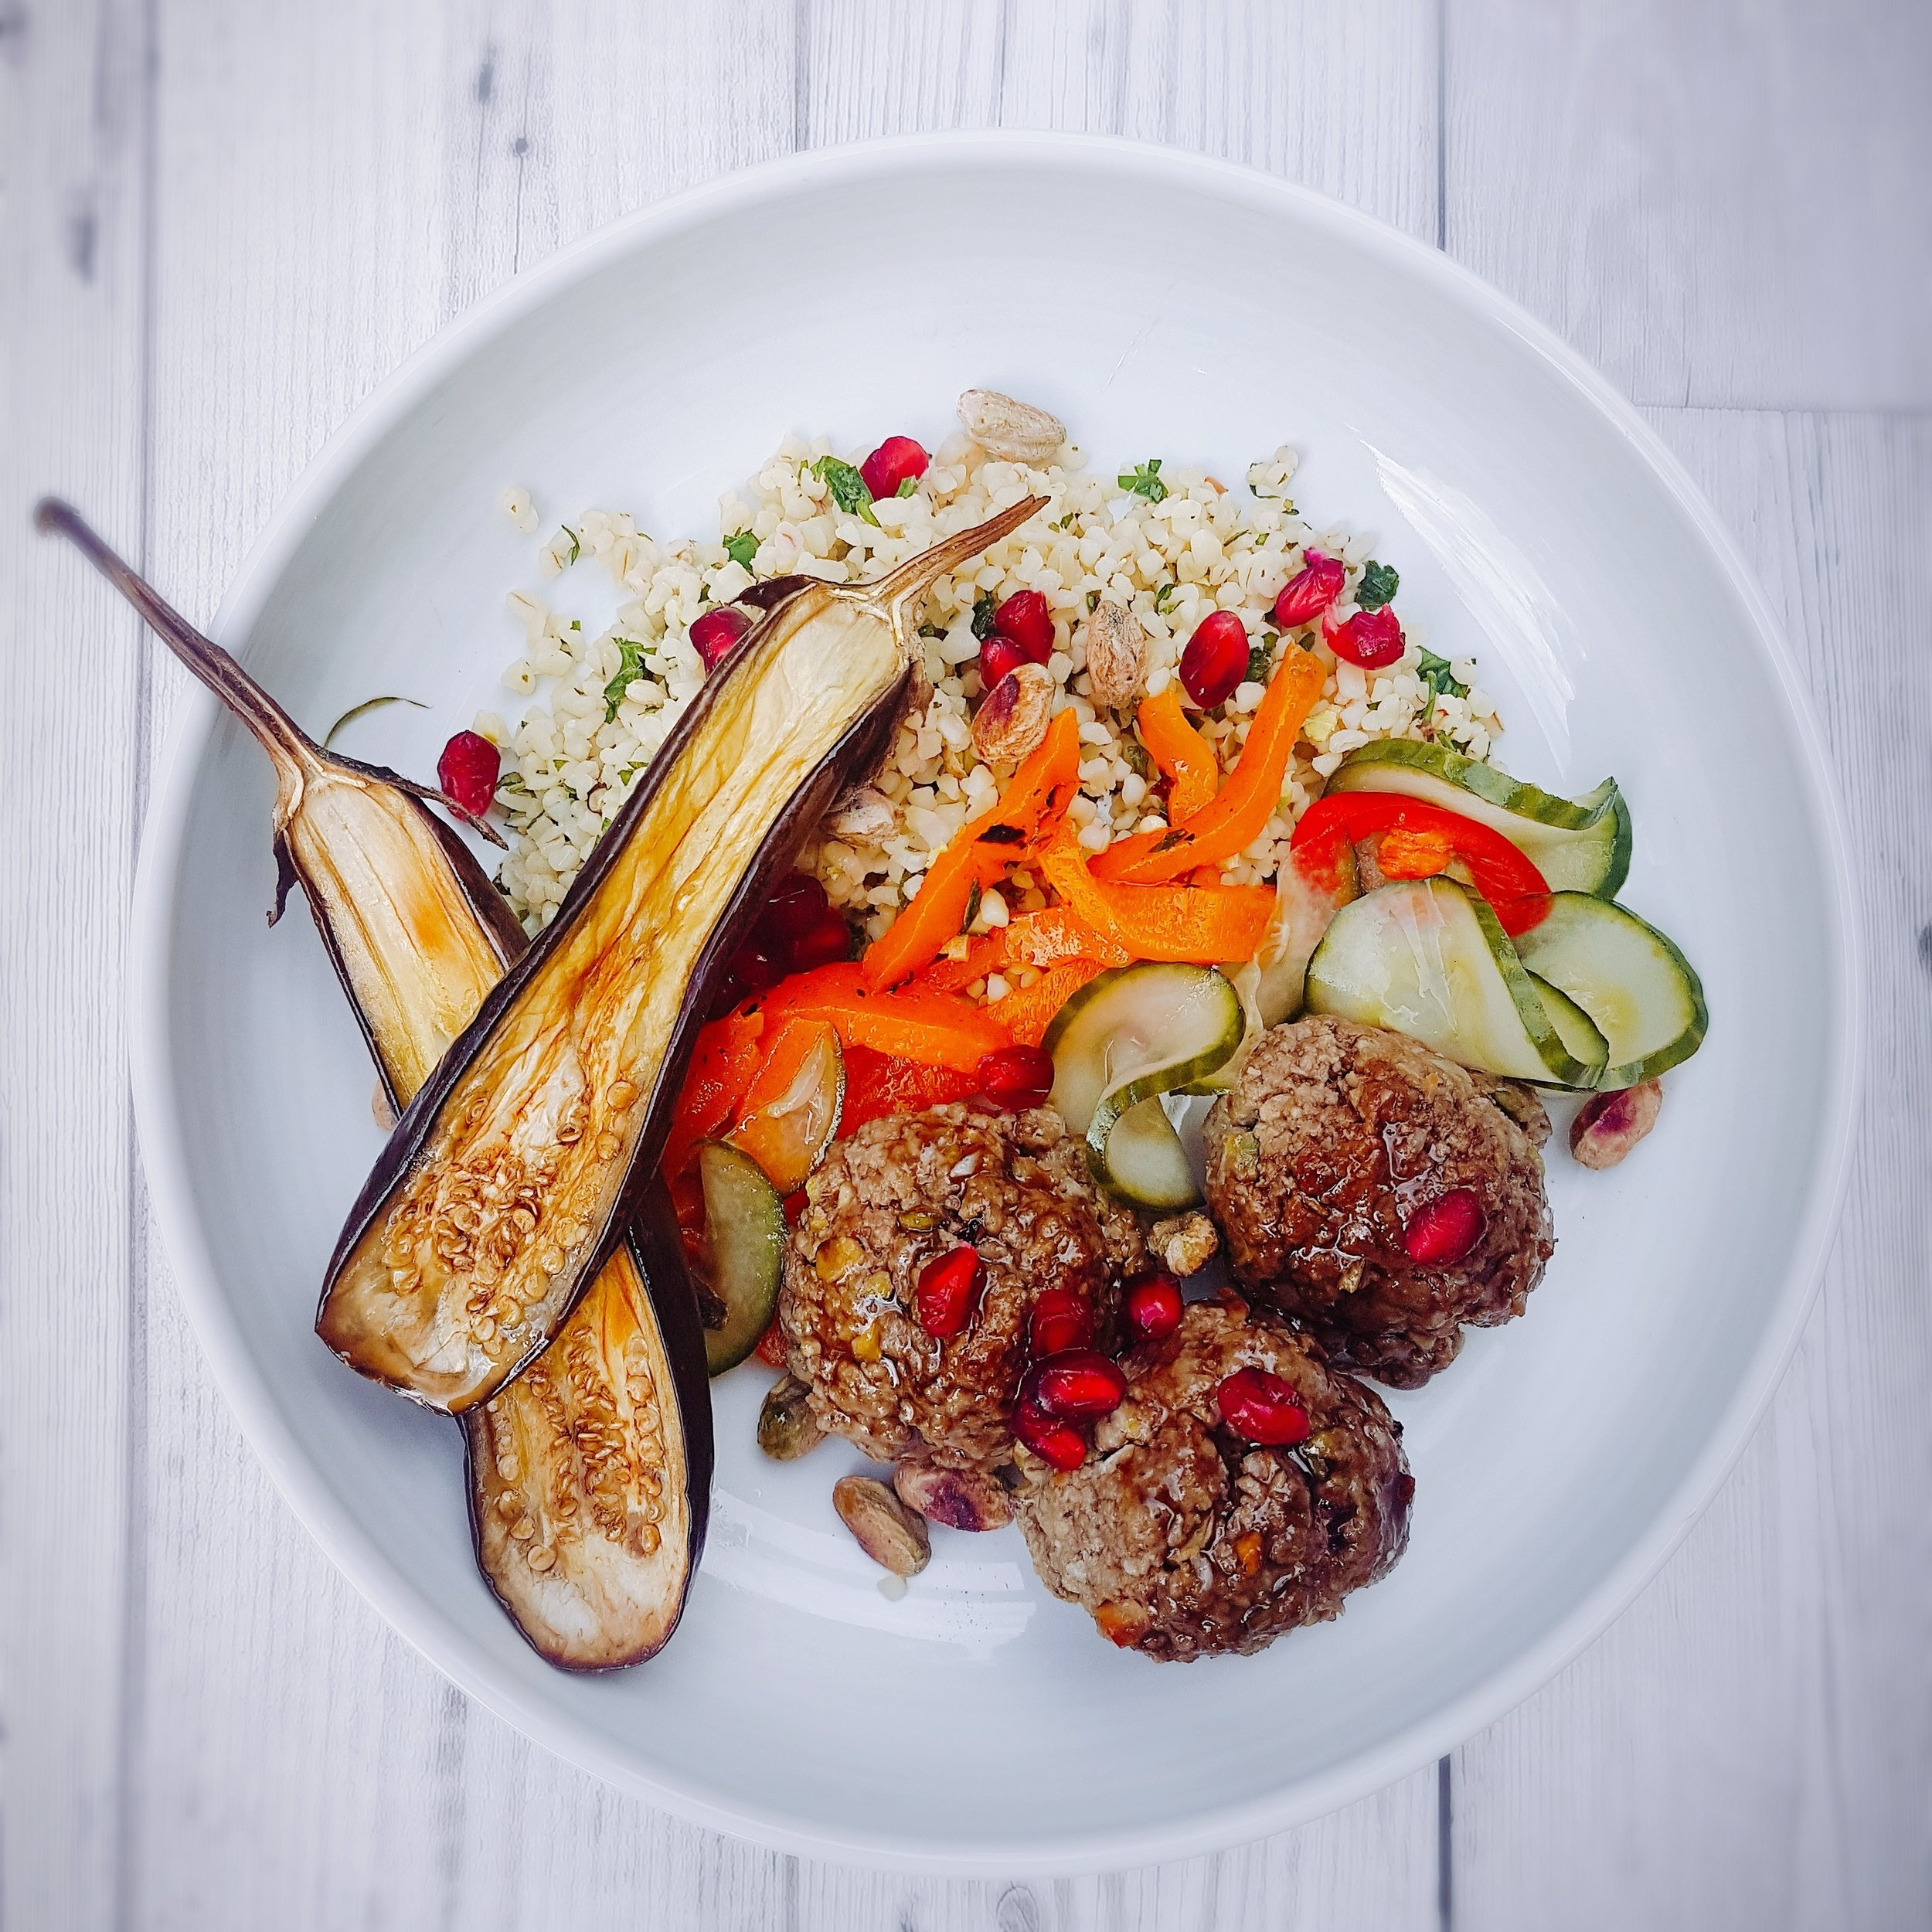 Lamb meatballs with bulgur wheat salad